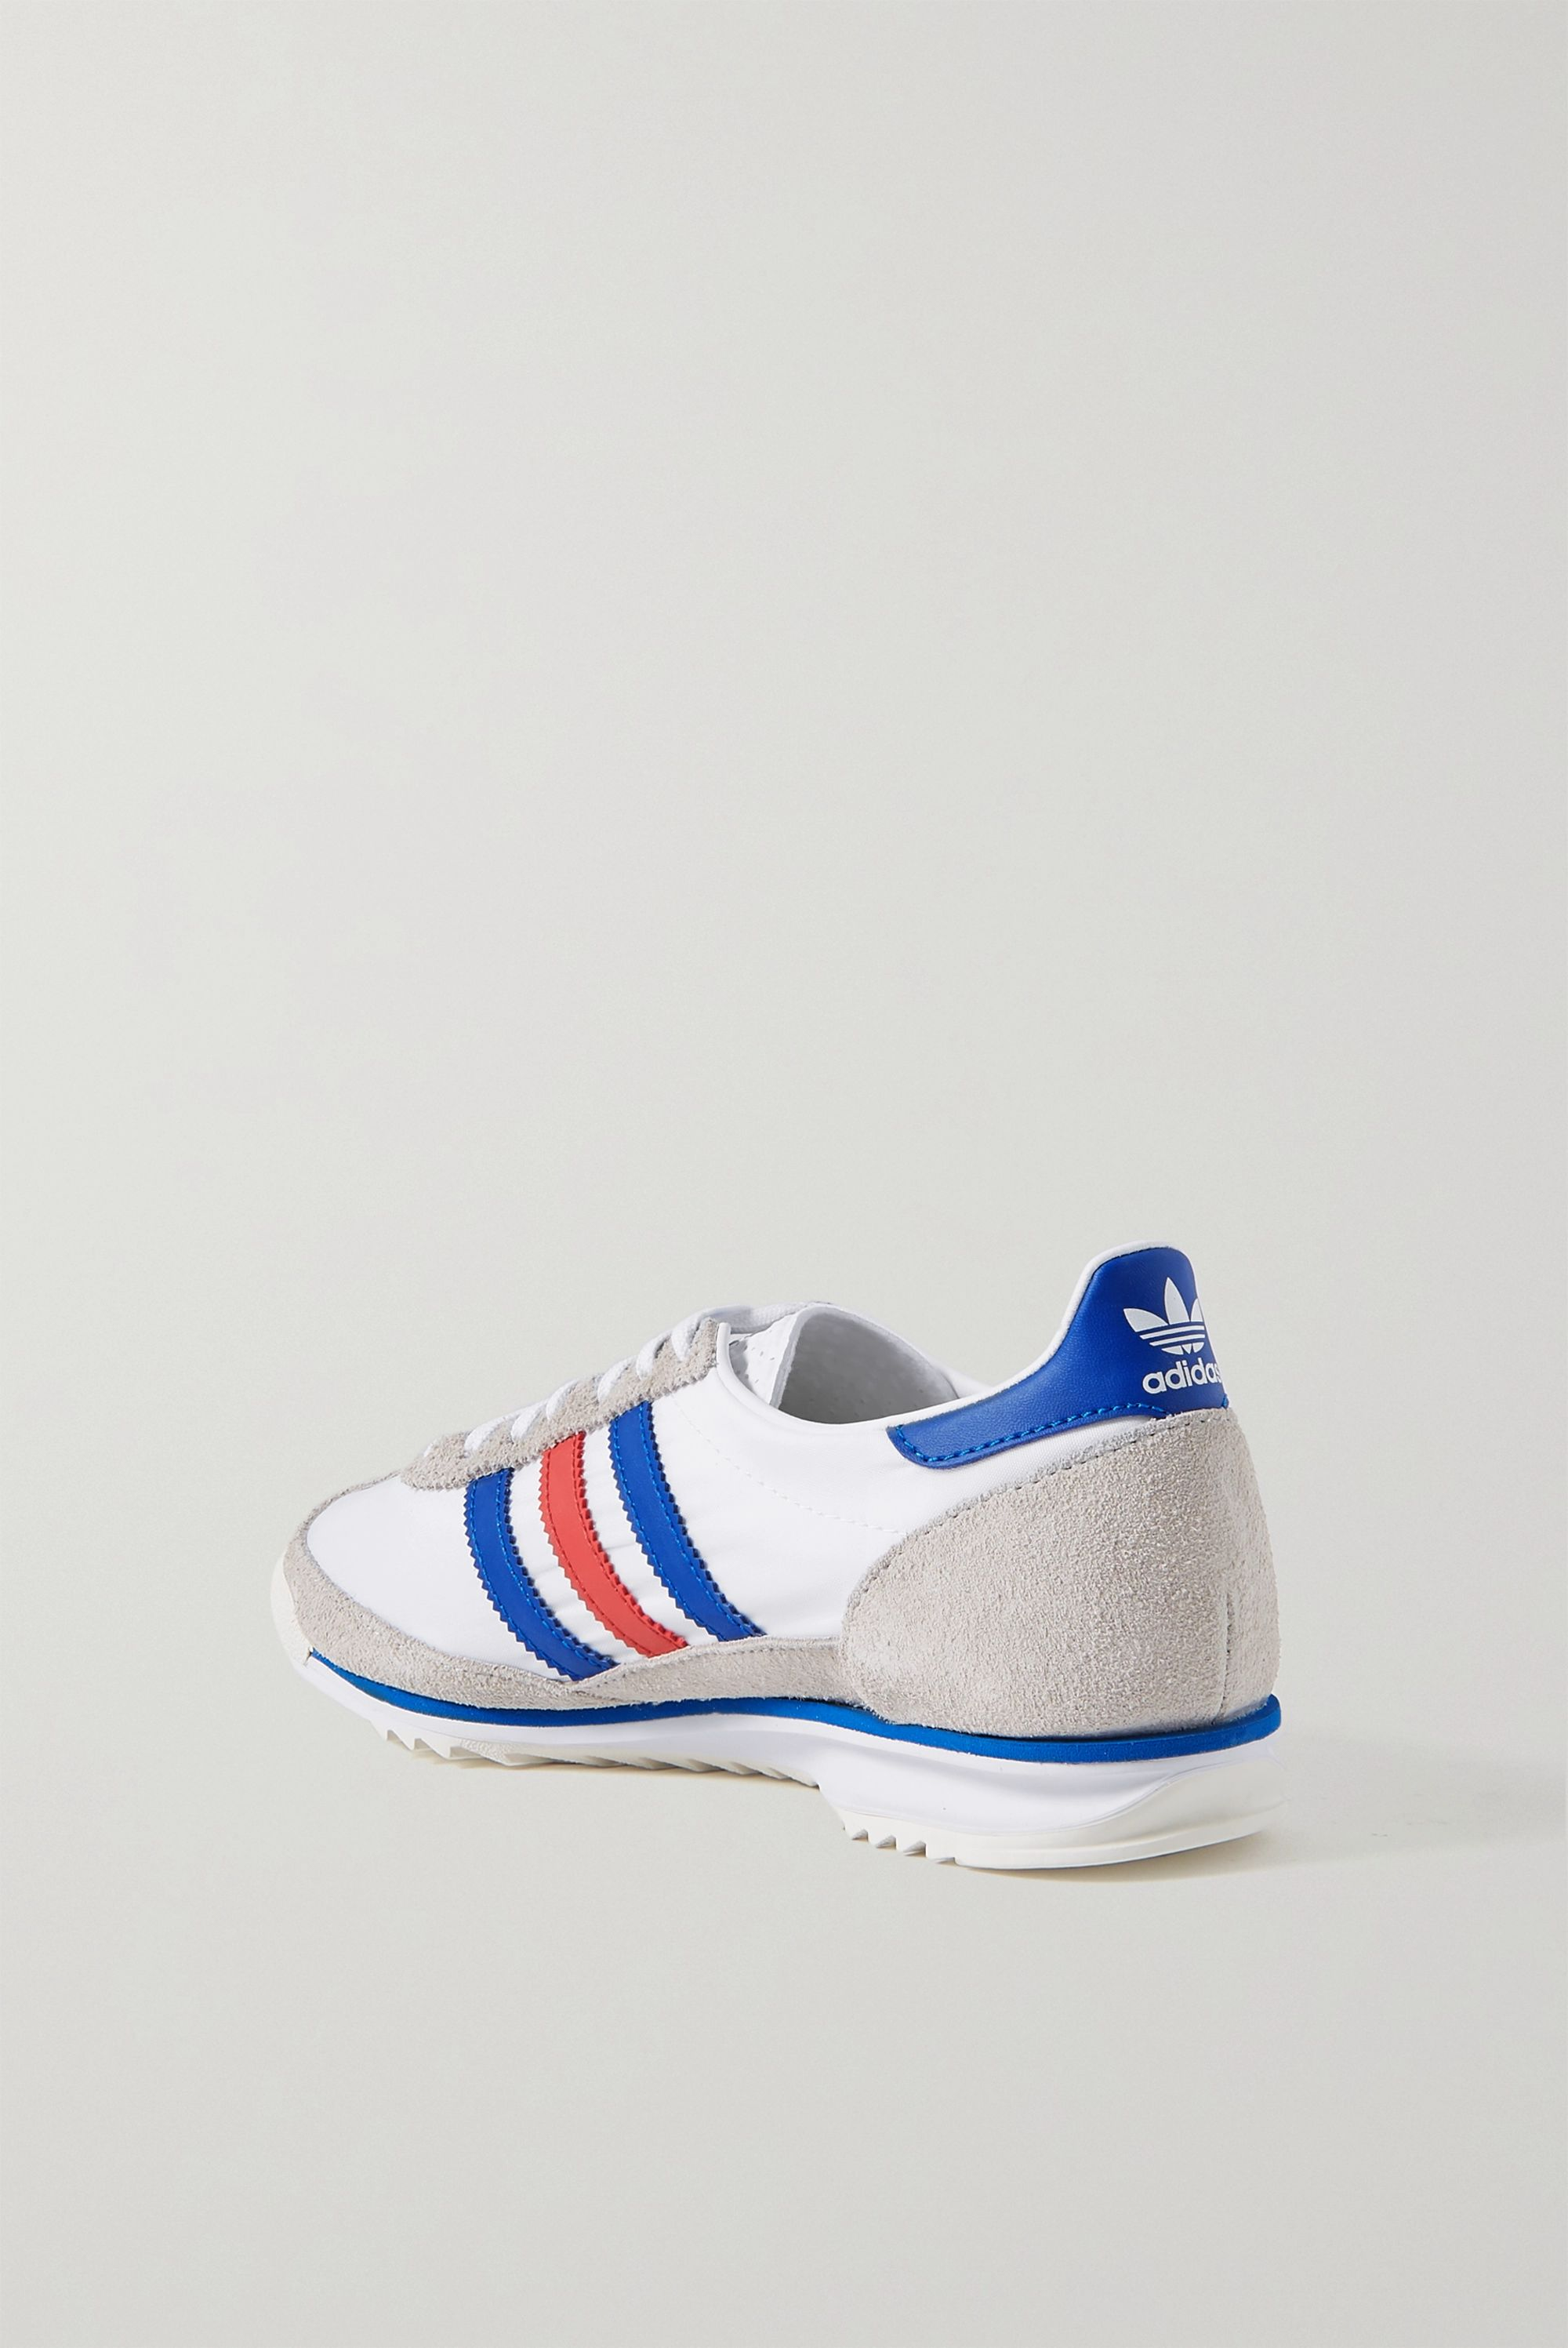 adidas Originals SL 72 suede and leather-trimmed shell sneakers